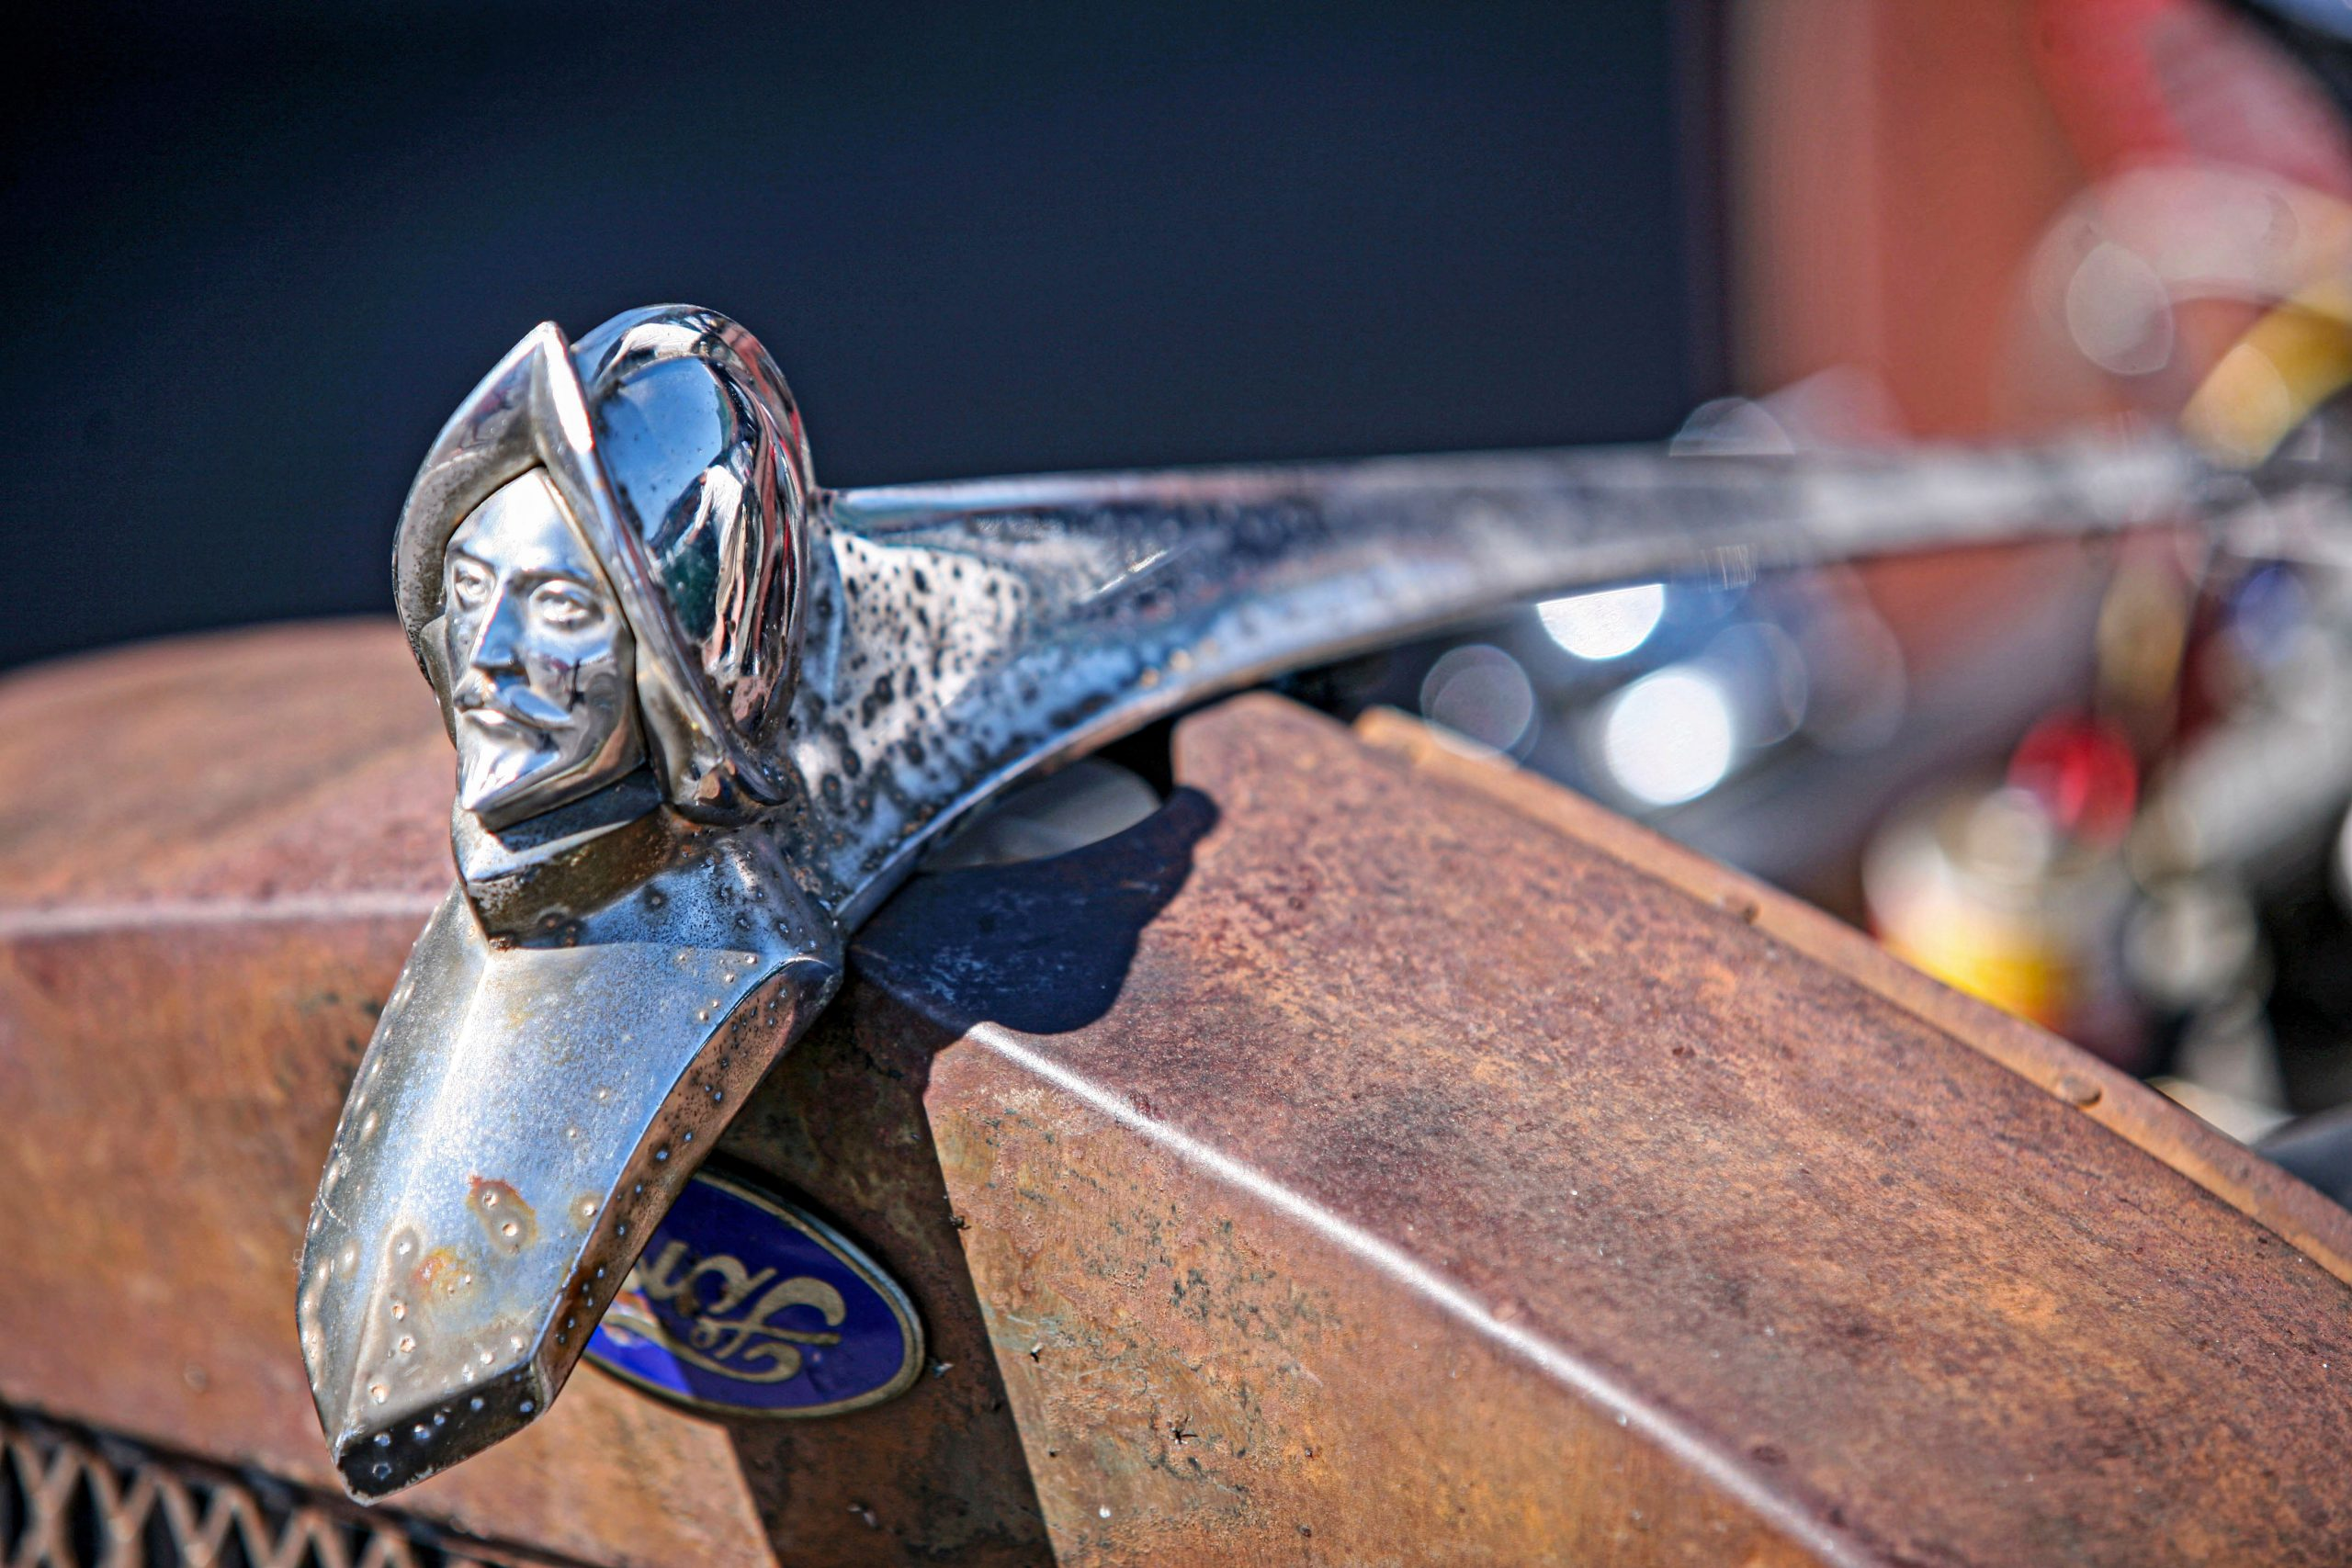 Desoto hood ornament on a Ford Model A